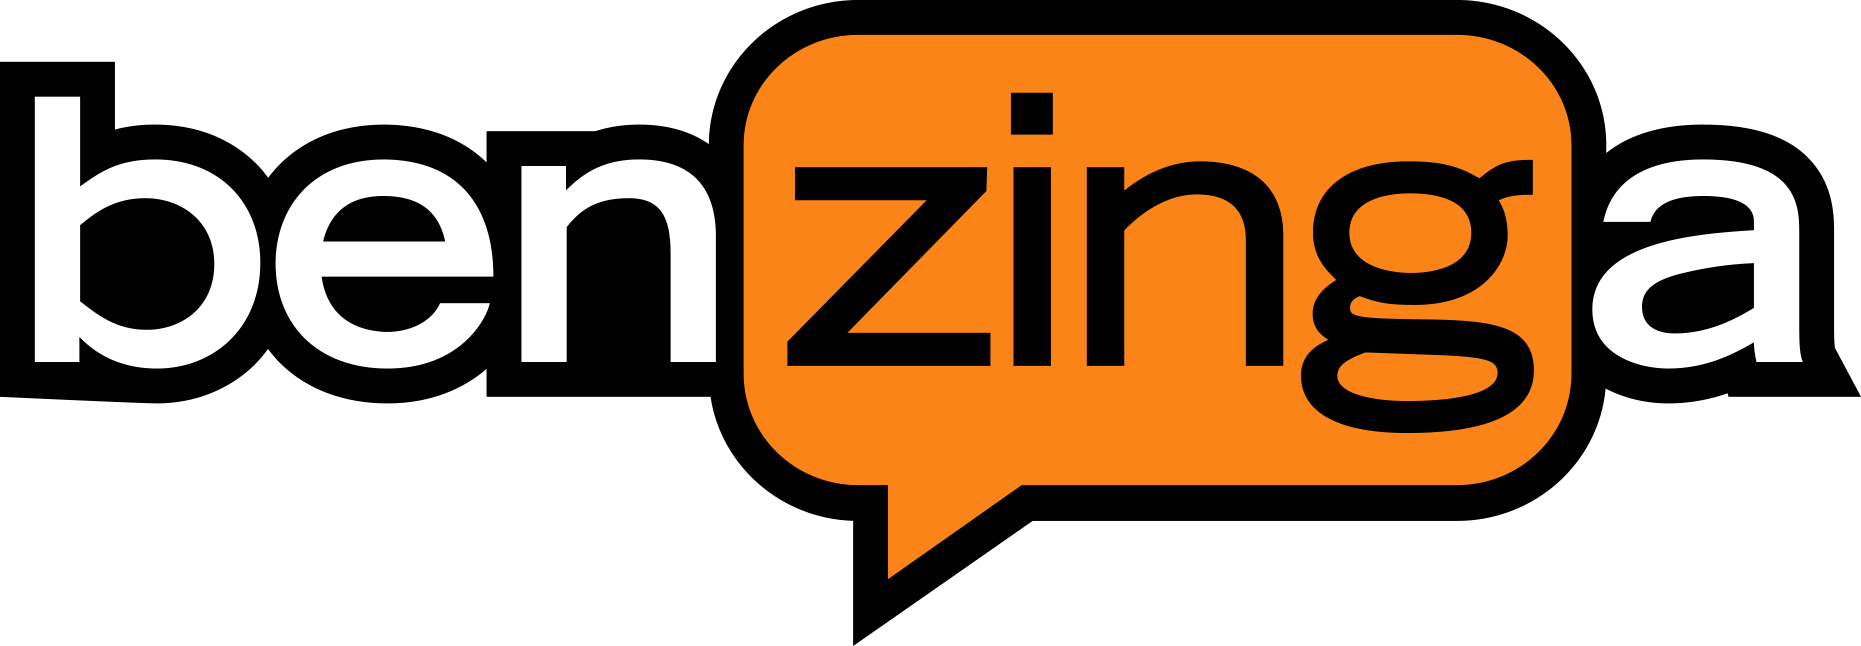 actionable trading ideas real time news financial insight benzinga